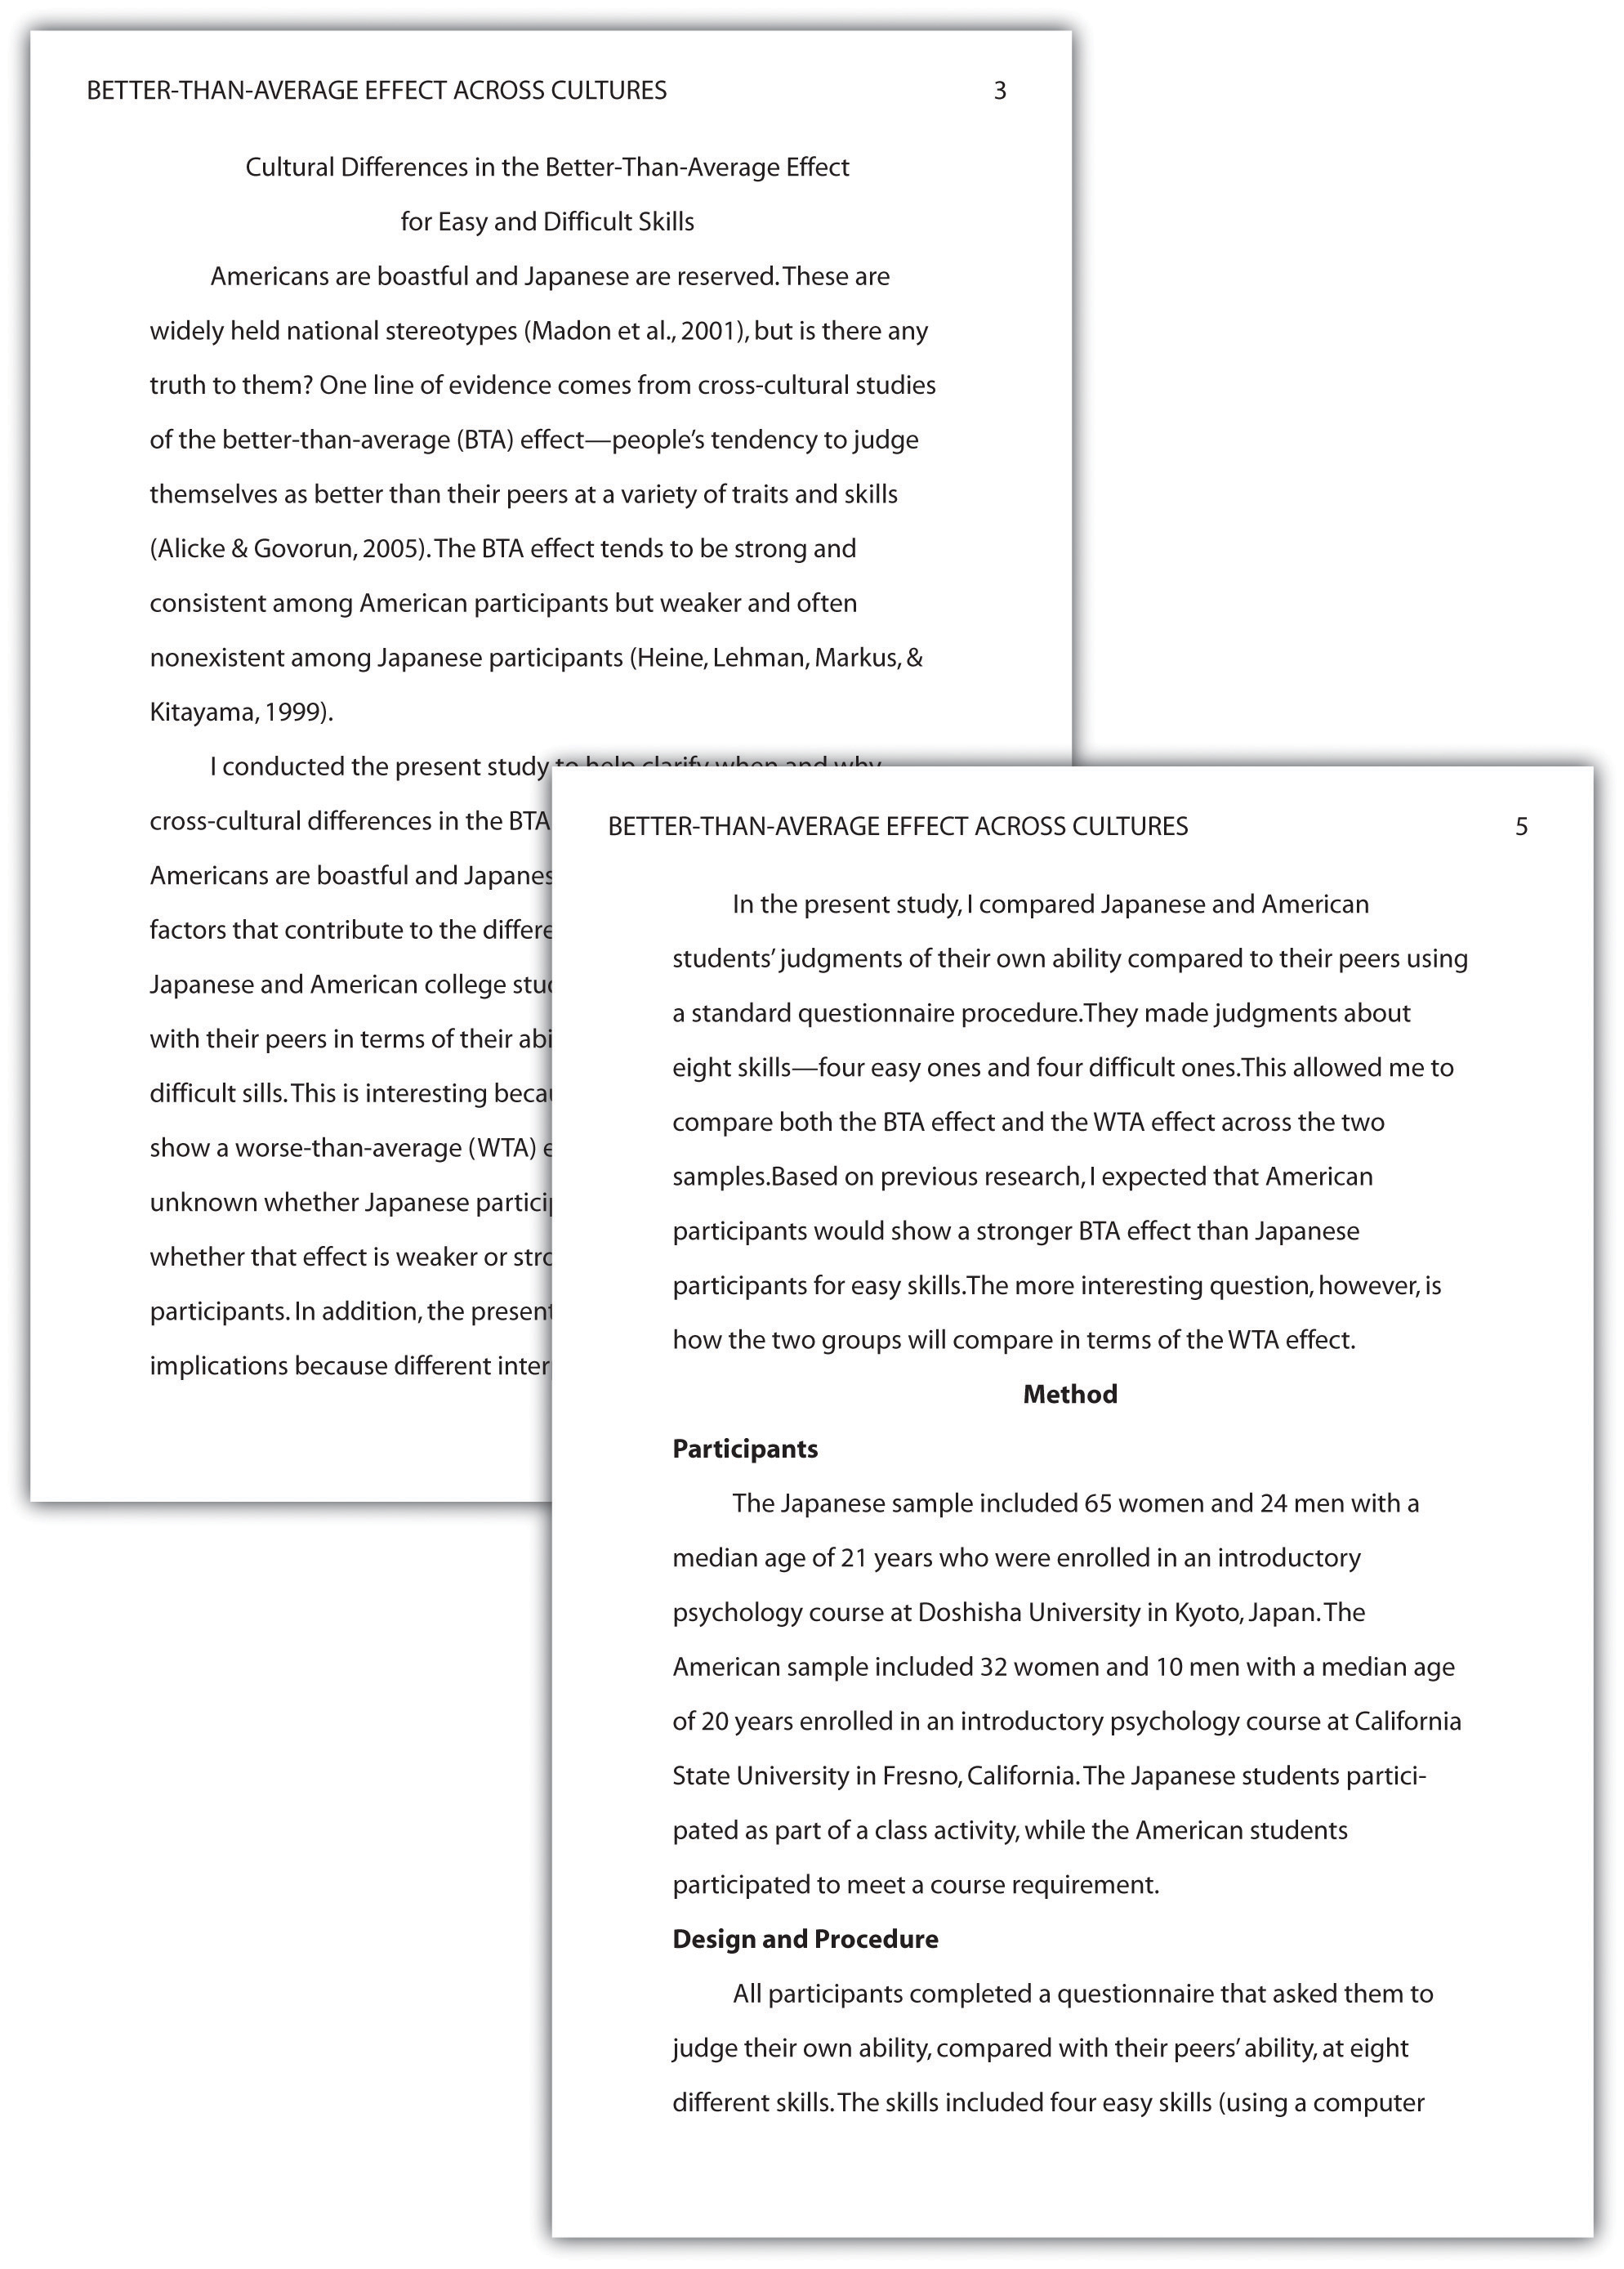 introductions for apa style research papers Get a sample dissertation, thesis example and research proposal sample from mastersthesiswritingcom for free citation style: apa download sample methodology you can order plagiarism-free thesis and dissertation papers, proposals, introductions, abstracts, conclusions, etc.